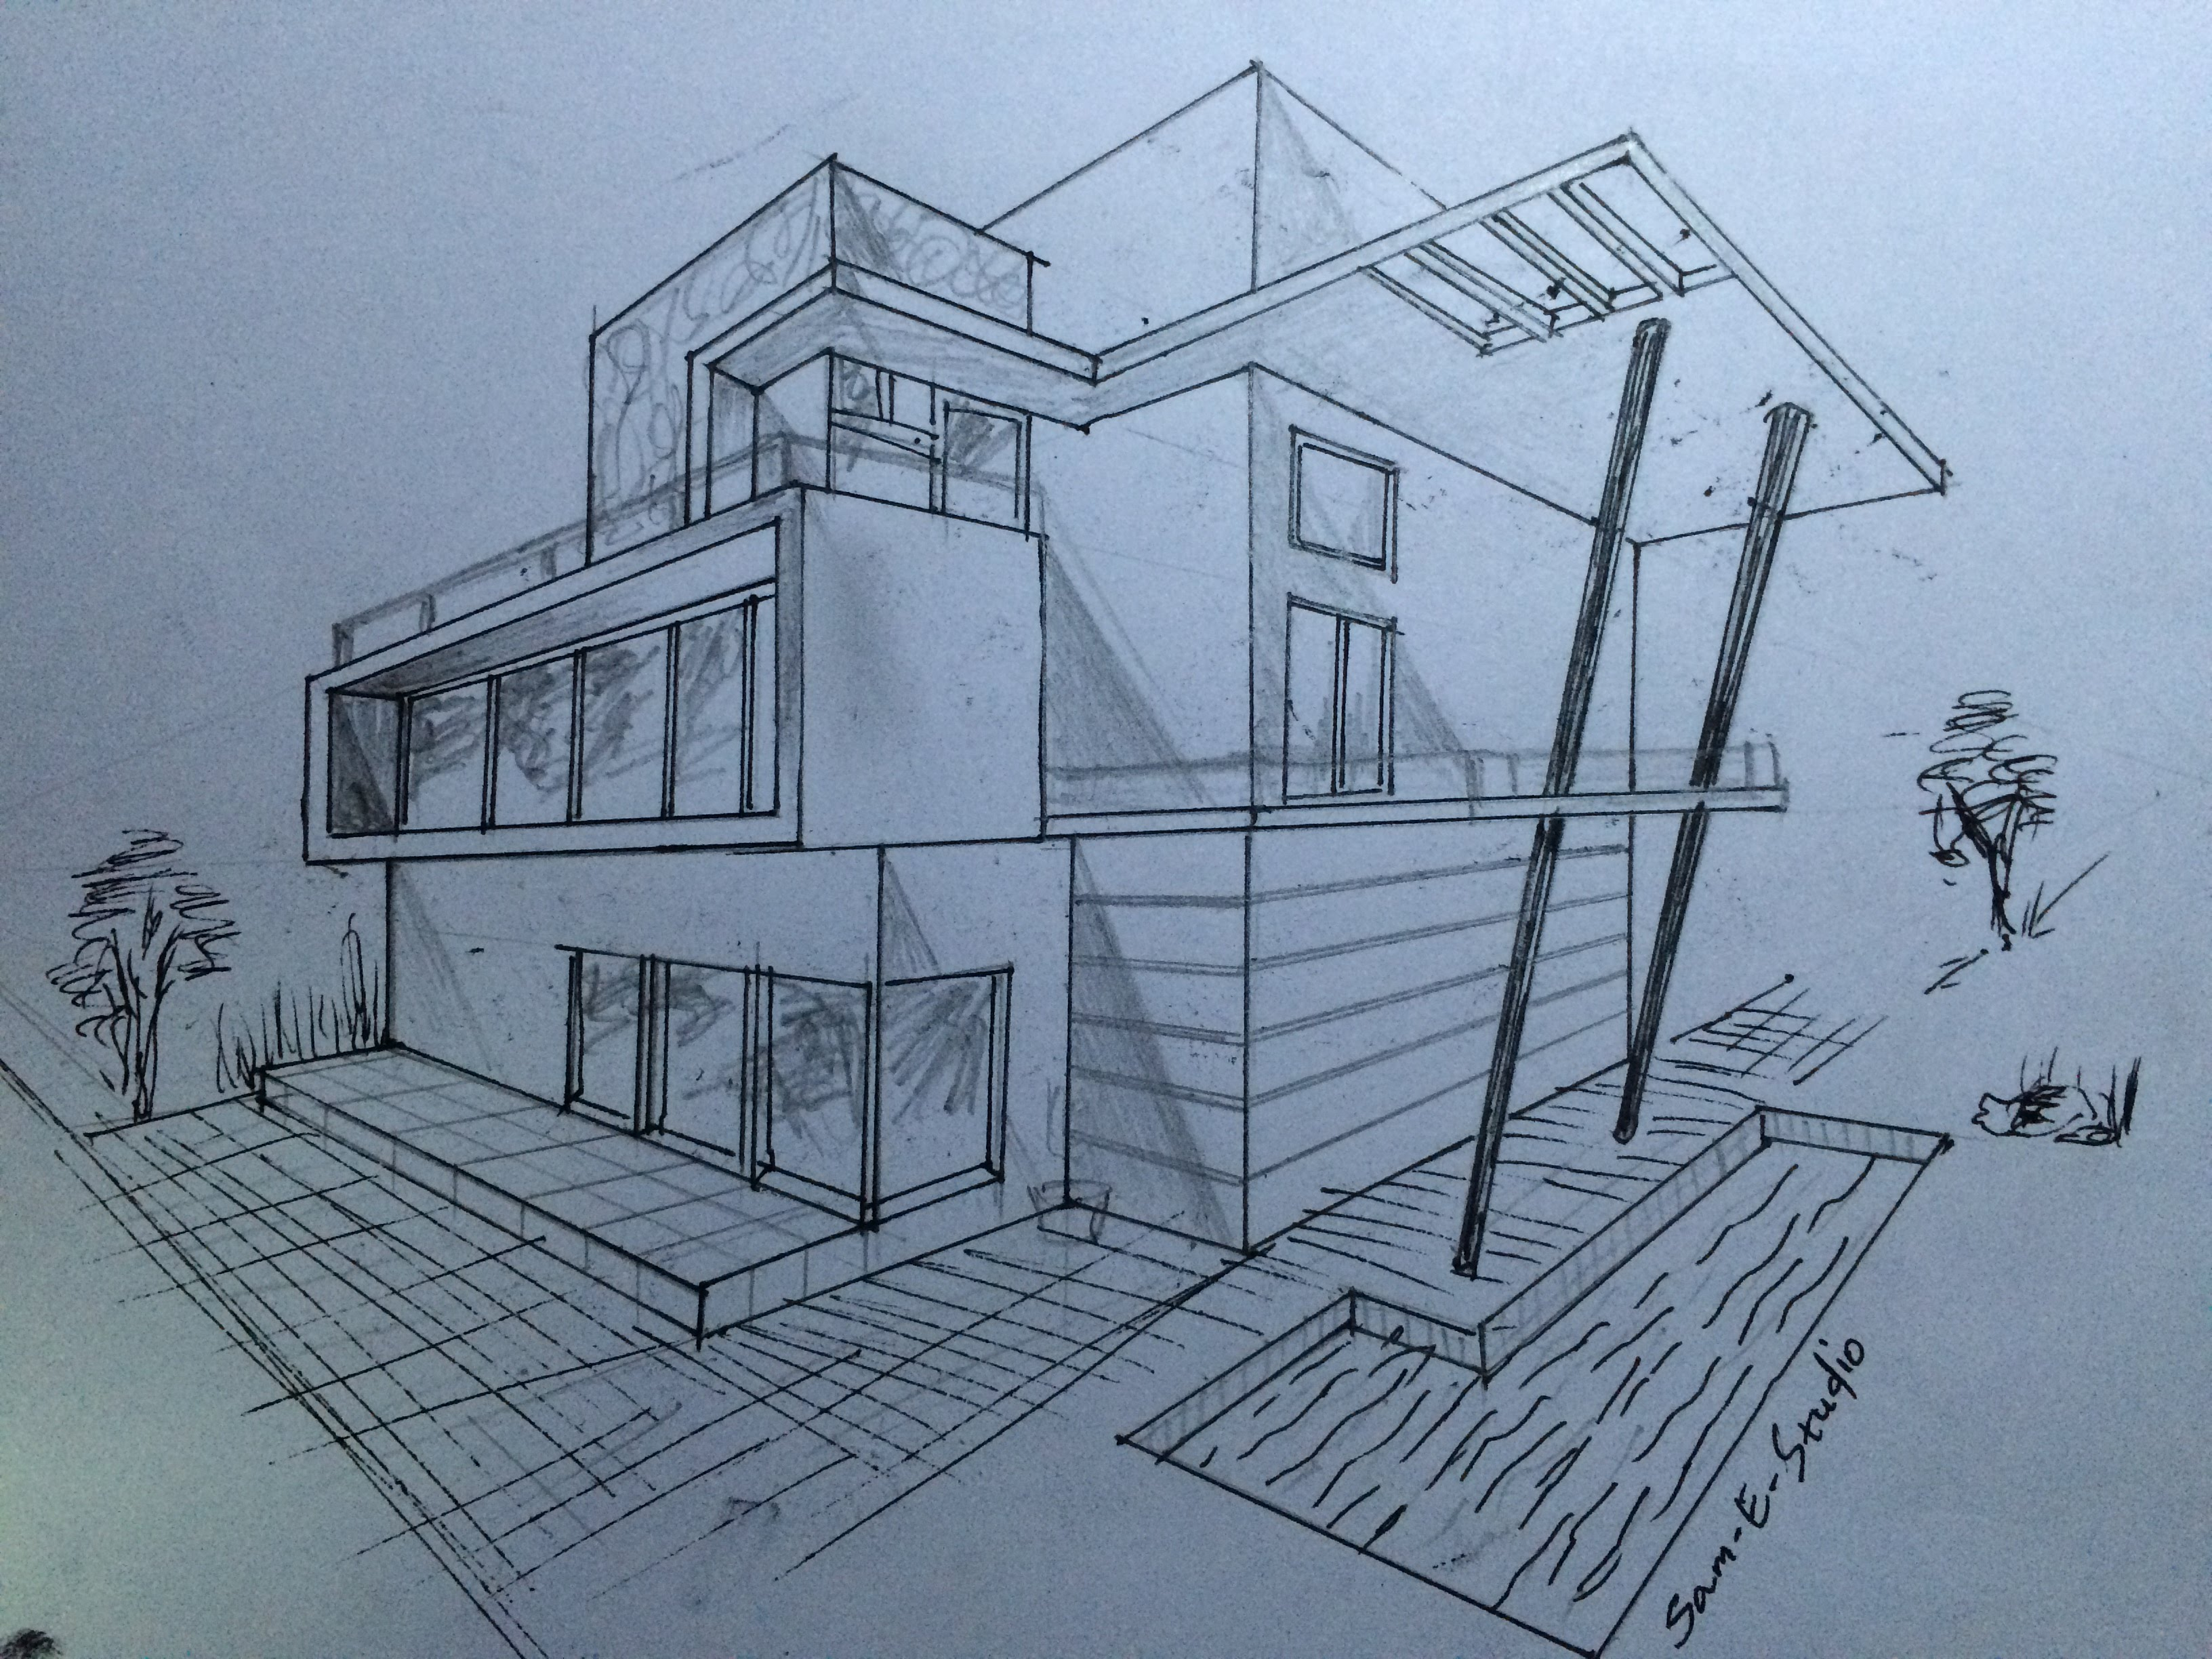 Line Drawing Of Your House : House architecture drawing at getdrawings free for personal